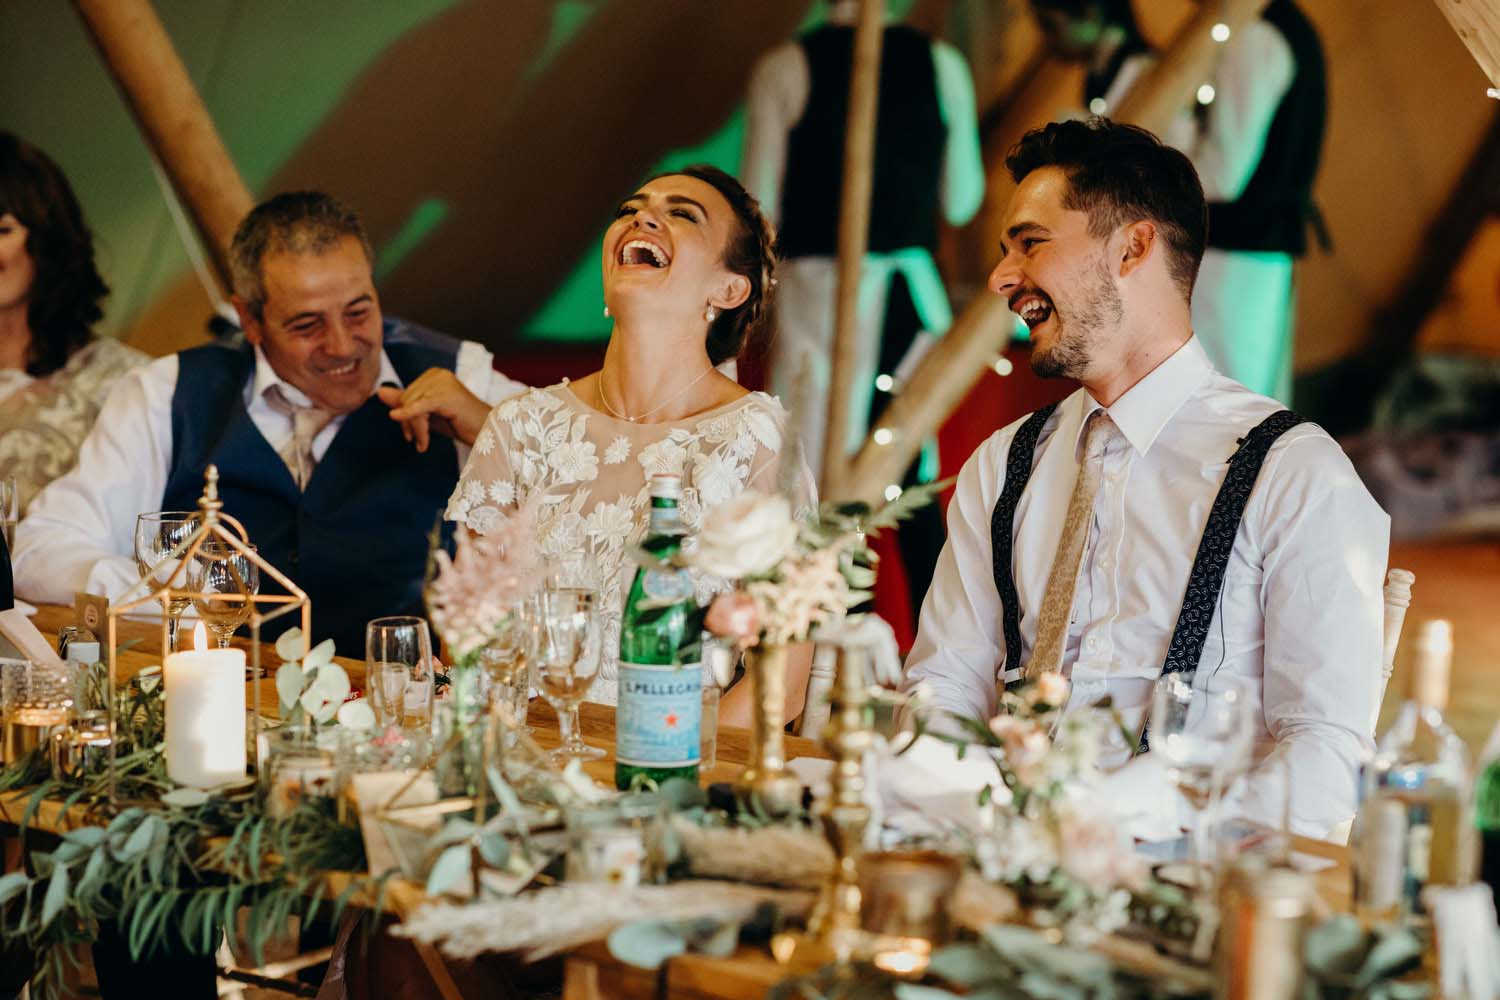 Head table laugh during speeches